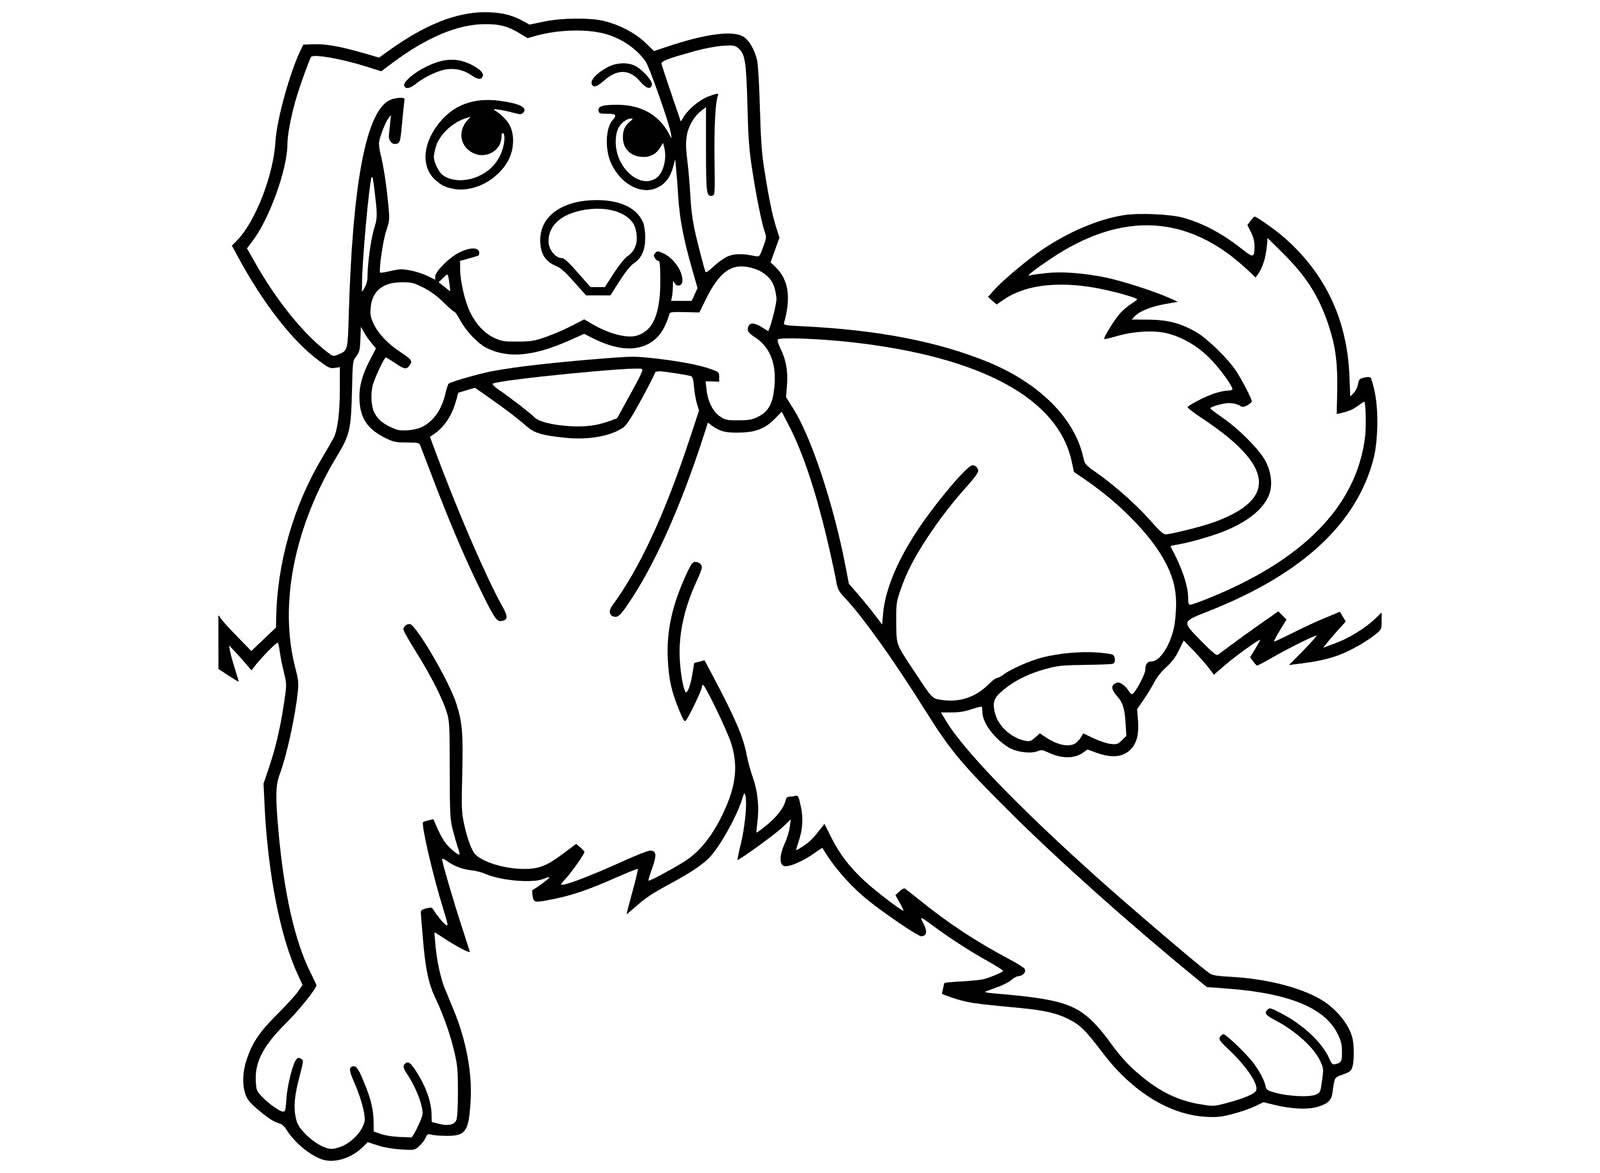 Cute free Dog coloring page to download: Dog & bone